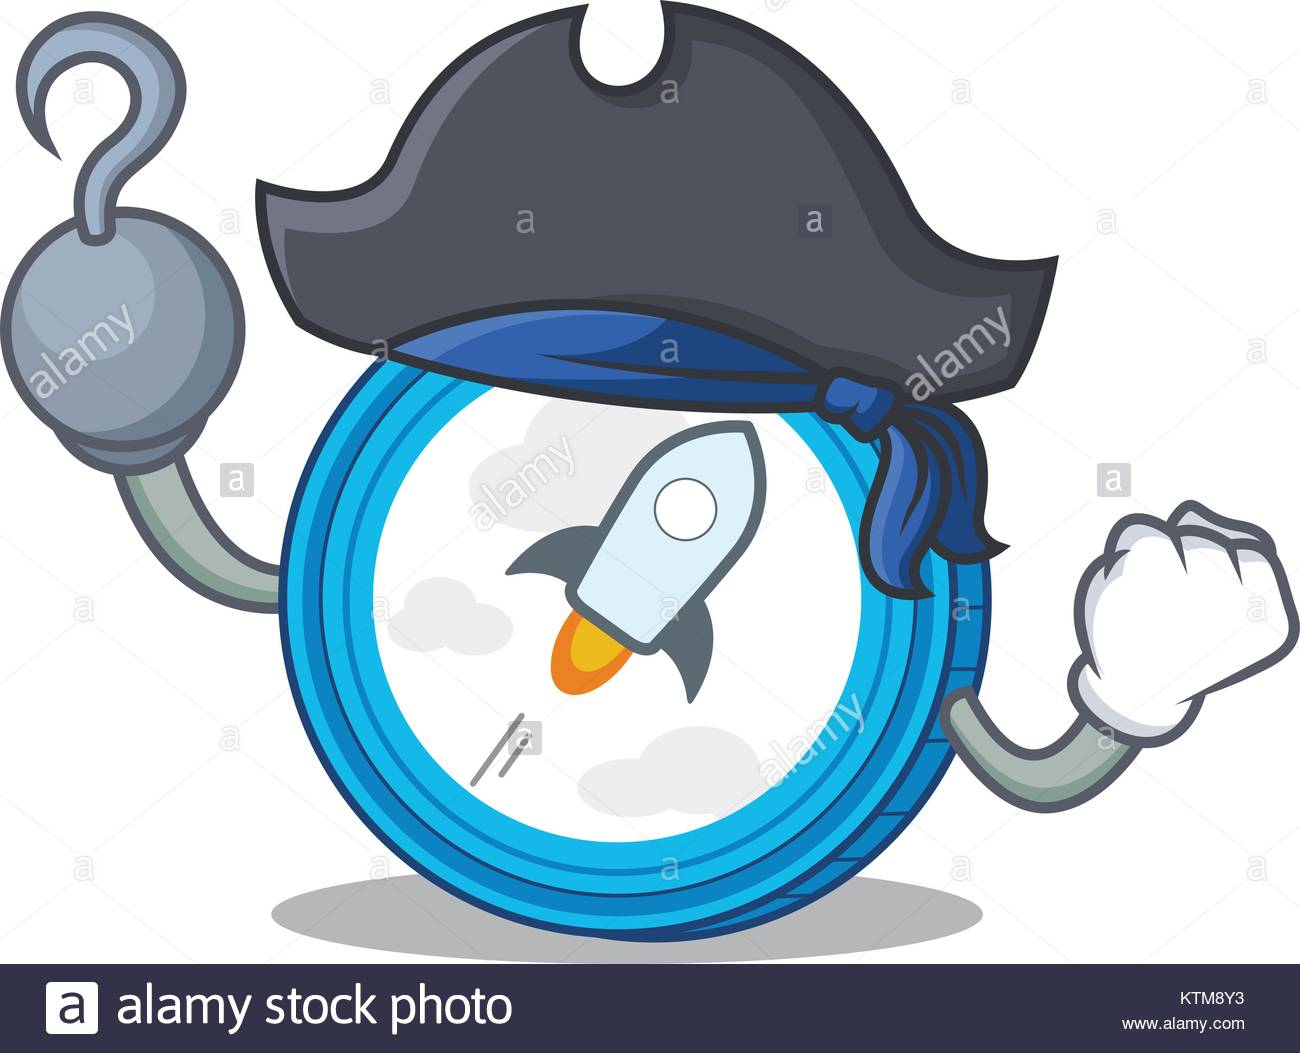 Pirate stellar coin character cartoon - Stock Image